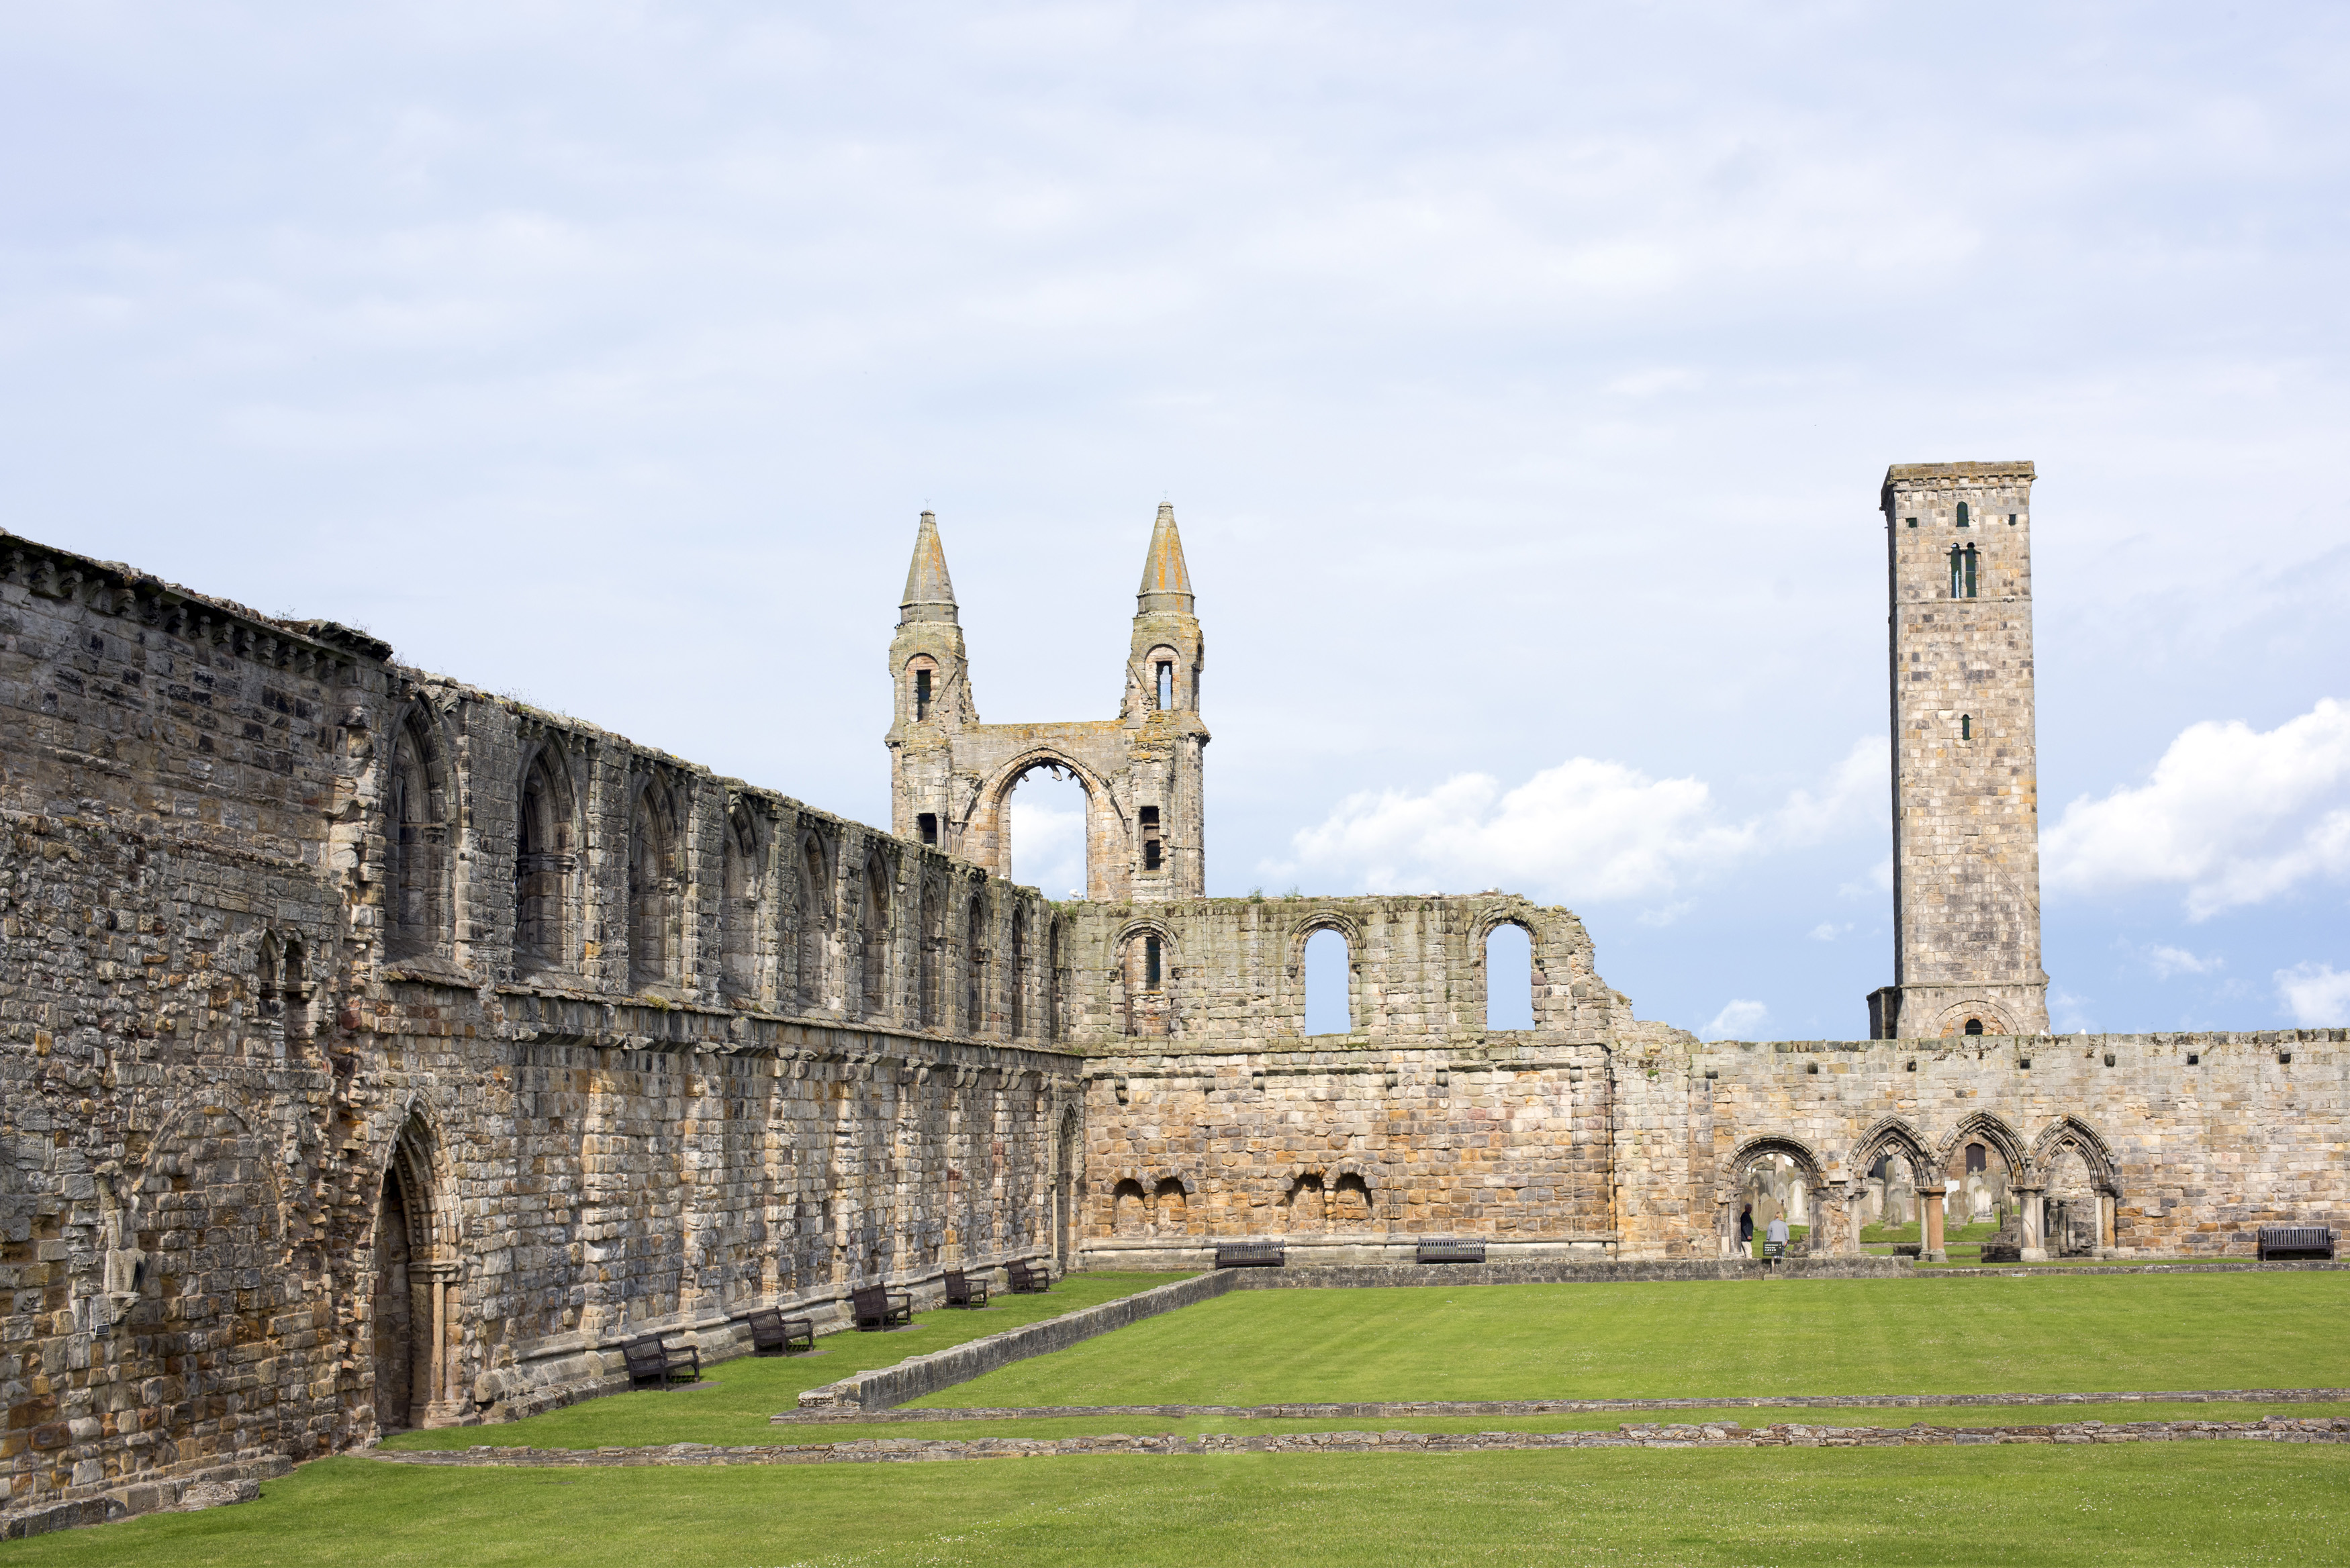 St Andrews Cathedral ruins, St Andrews, Scotland showing the remnants of the historic stone walls and Gothic spires under a cloudy grey sky